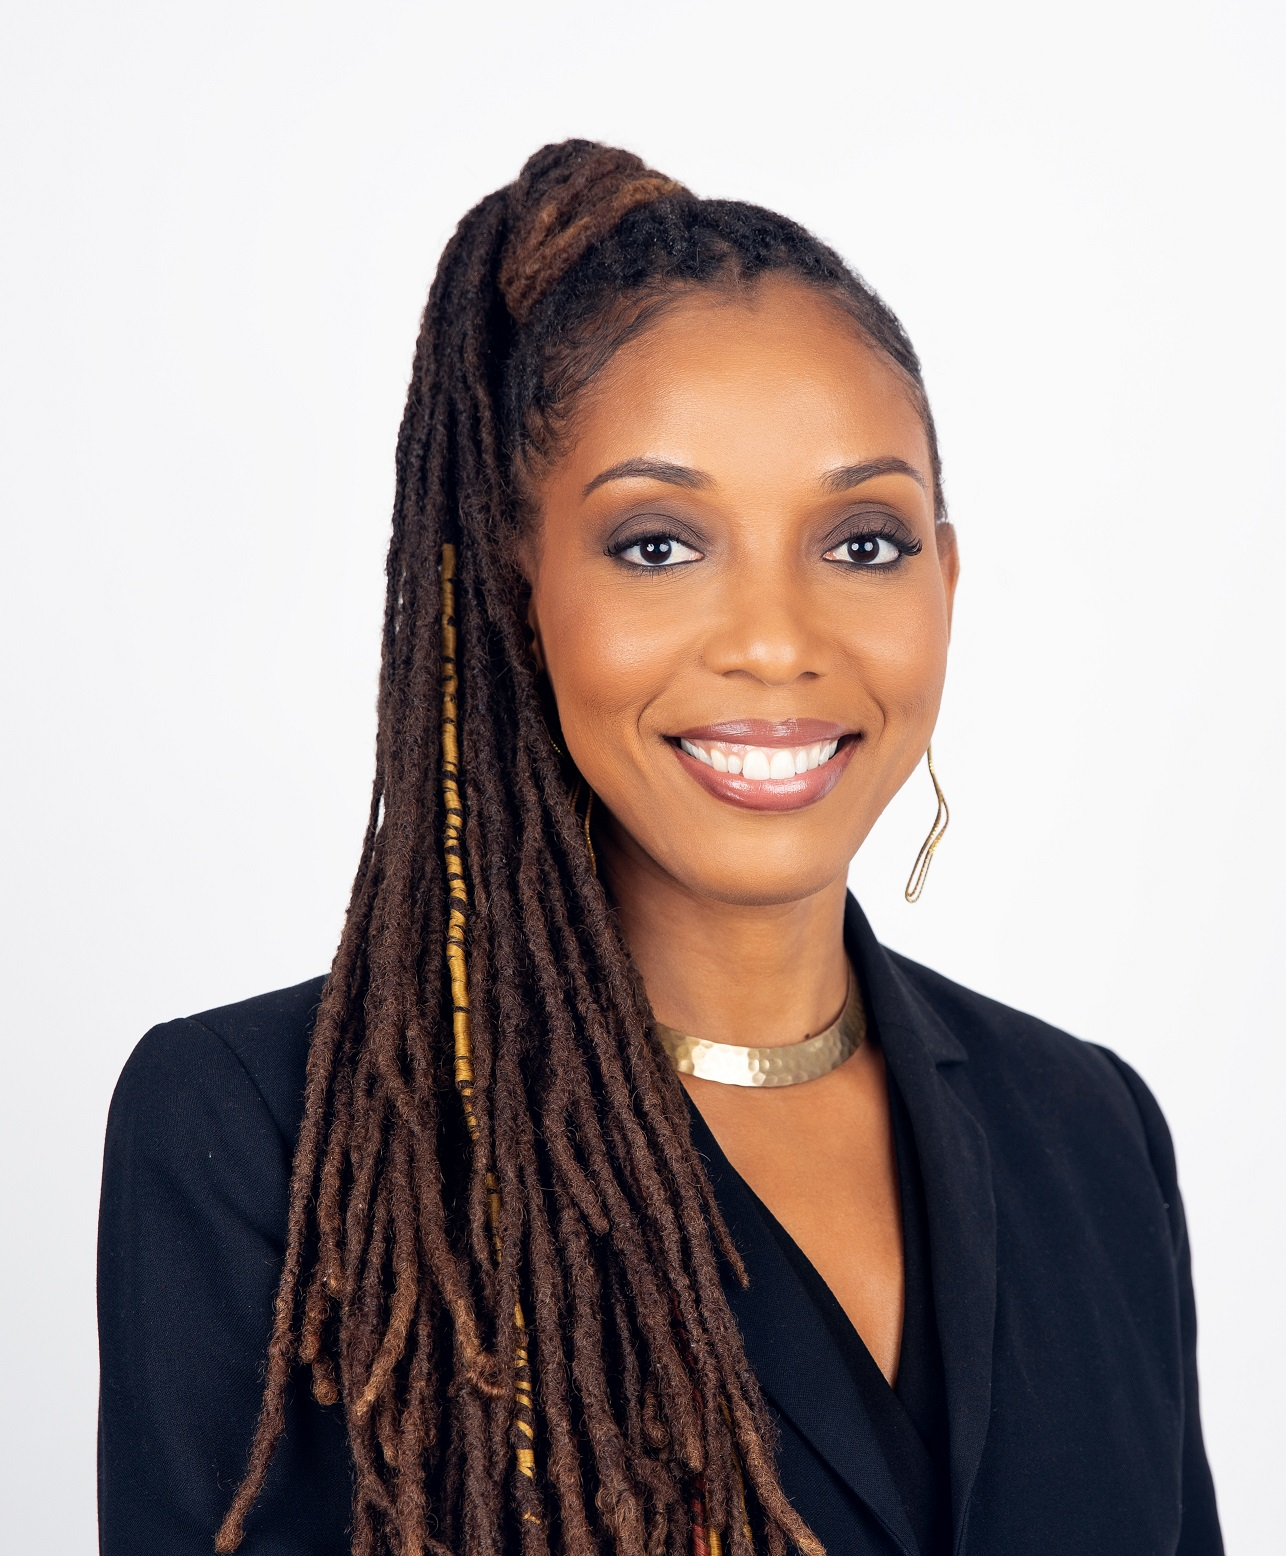 Imega Breese McNab Appointed New Executive Director of the PSOJ